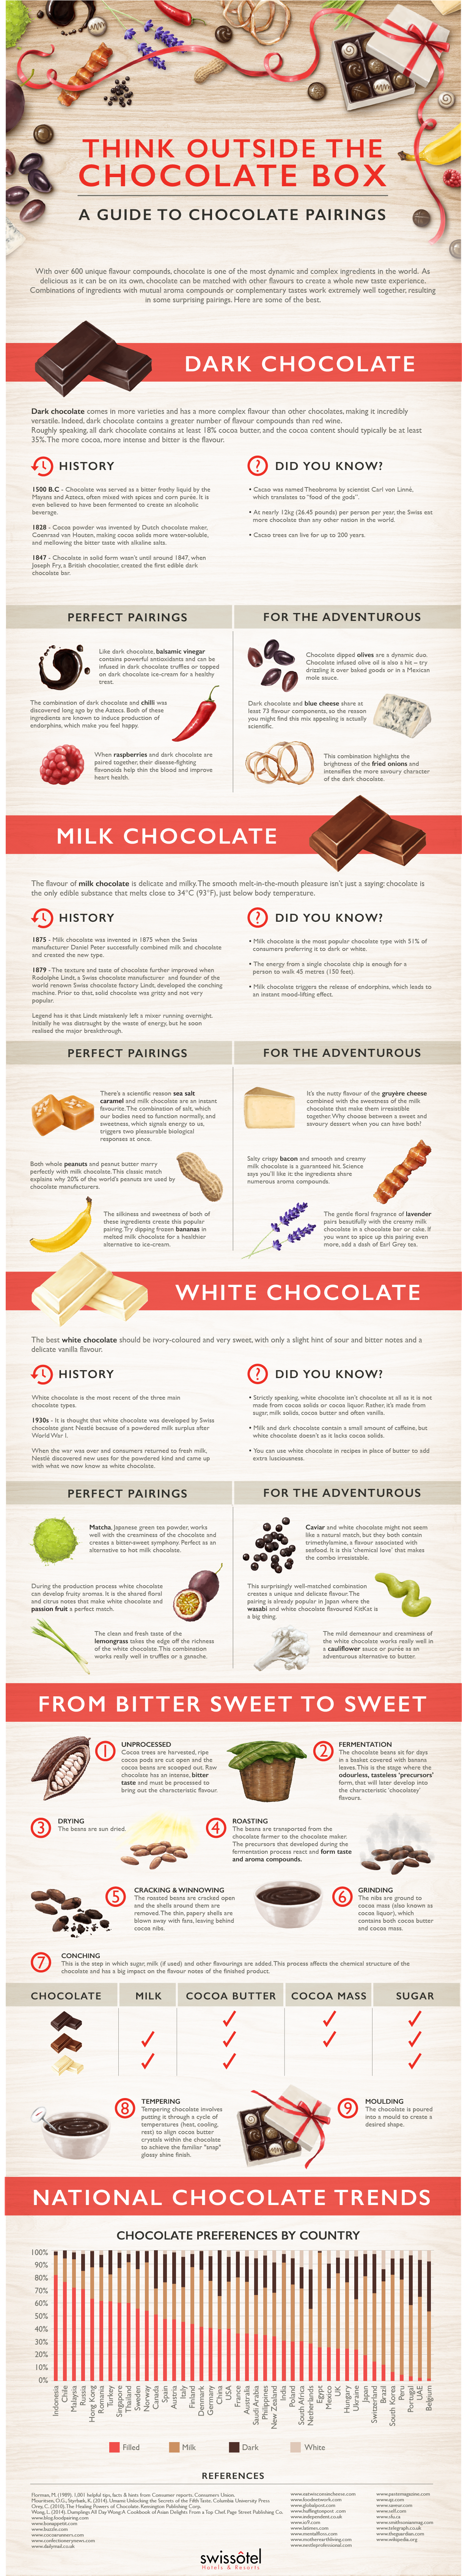 A Guide to Classy Chocolate Pairings